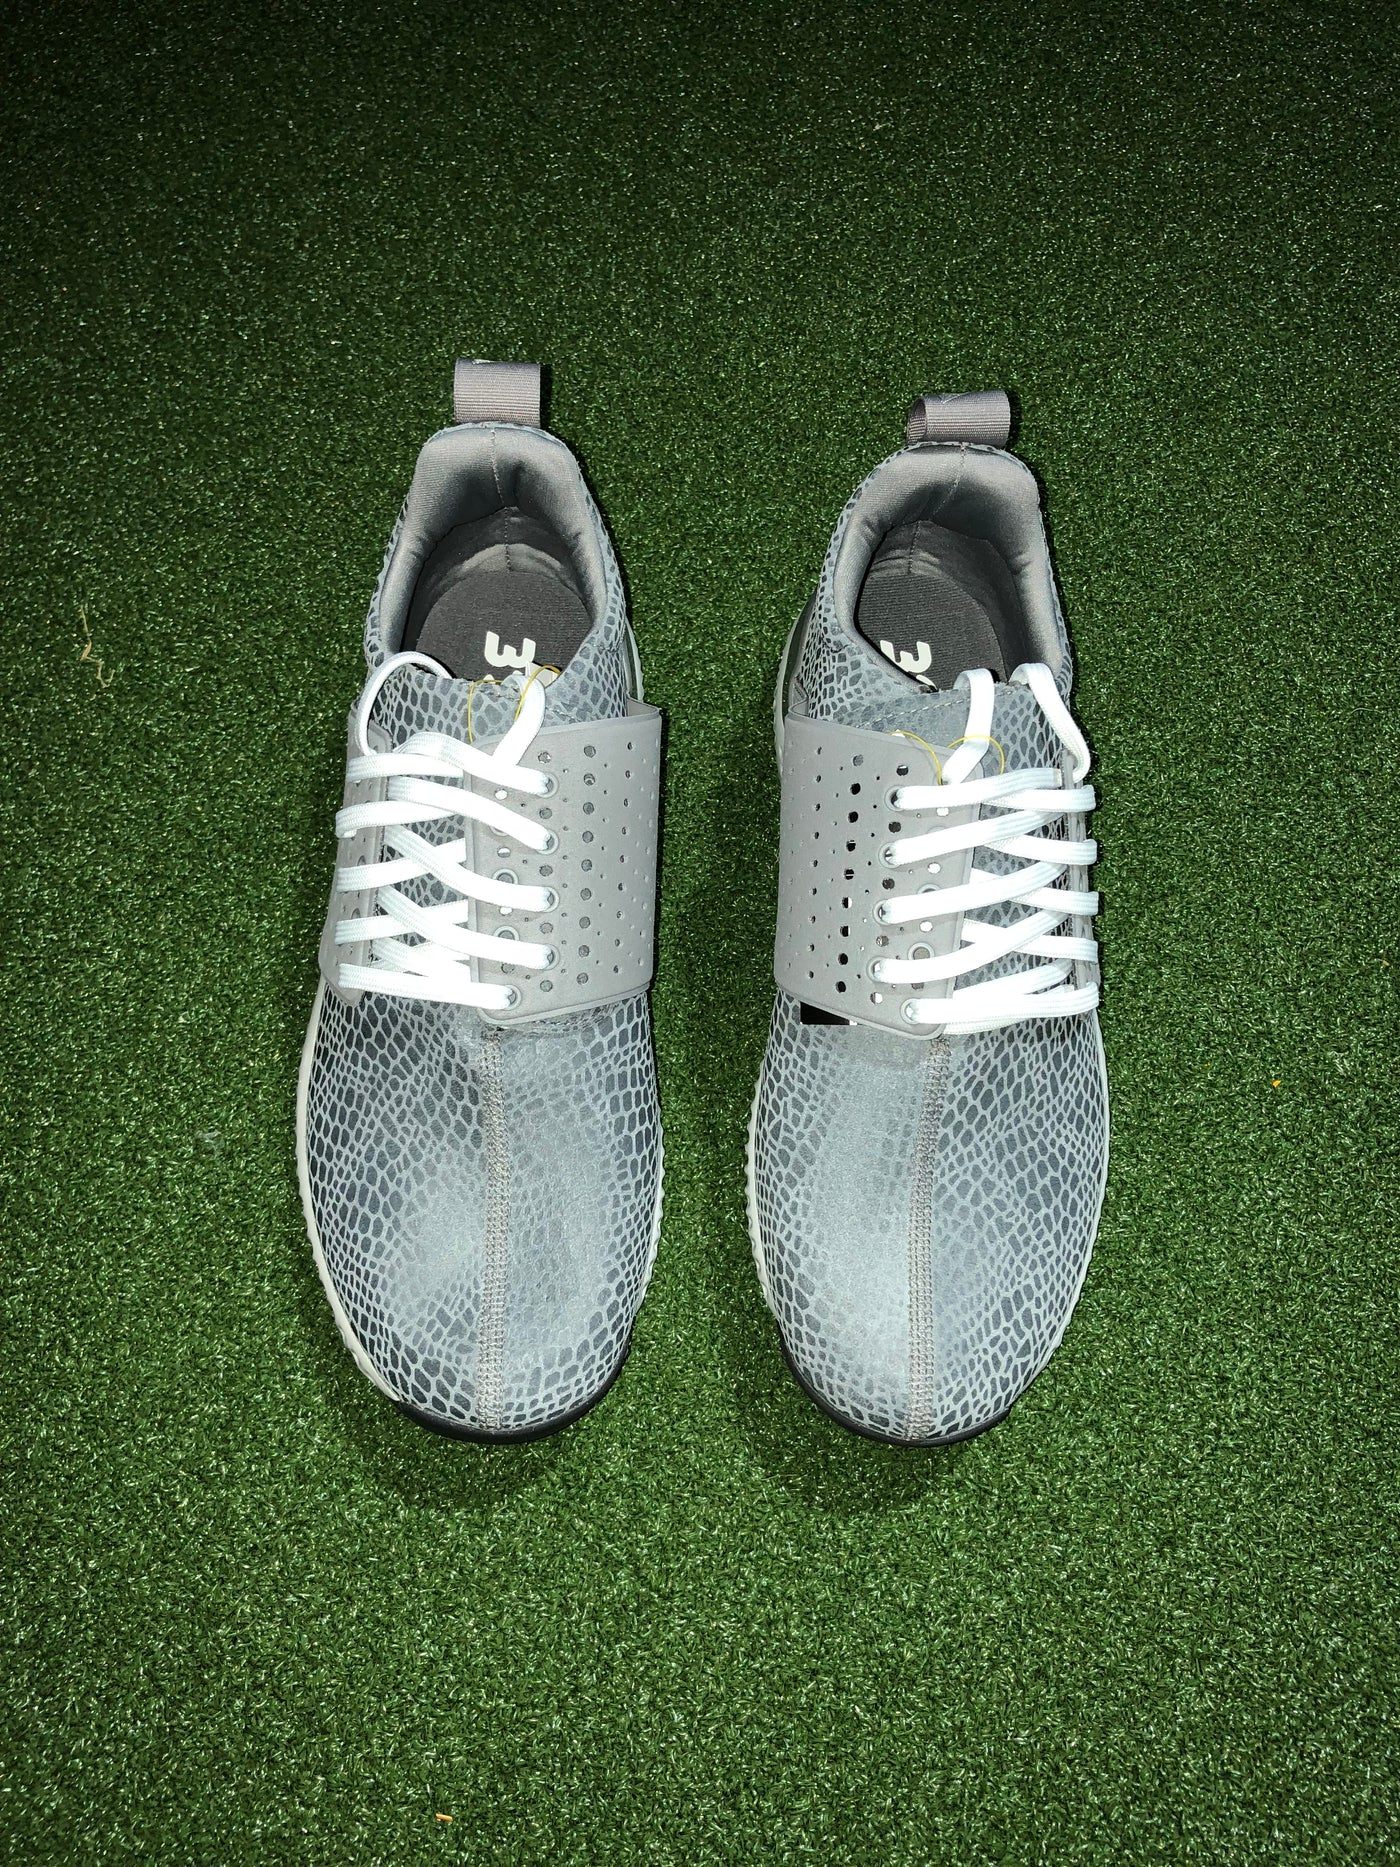 3f0807a812953 ADIDAS Adicross Bounce Golf Shoes Grey Grey White – Carus Green ...